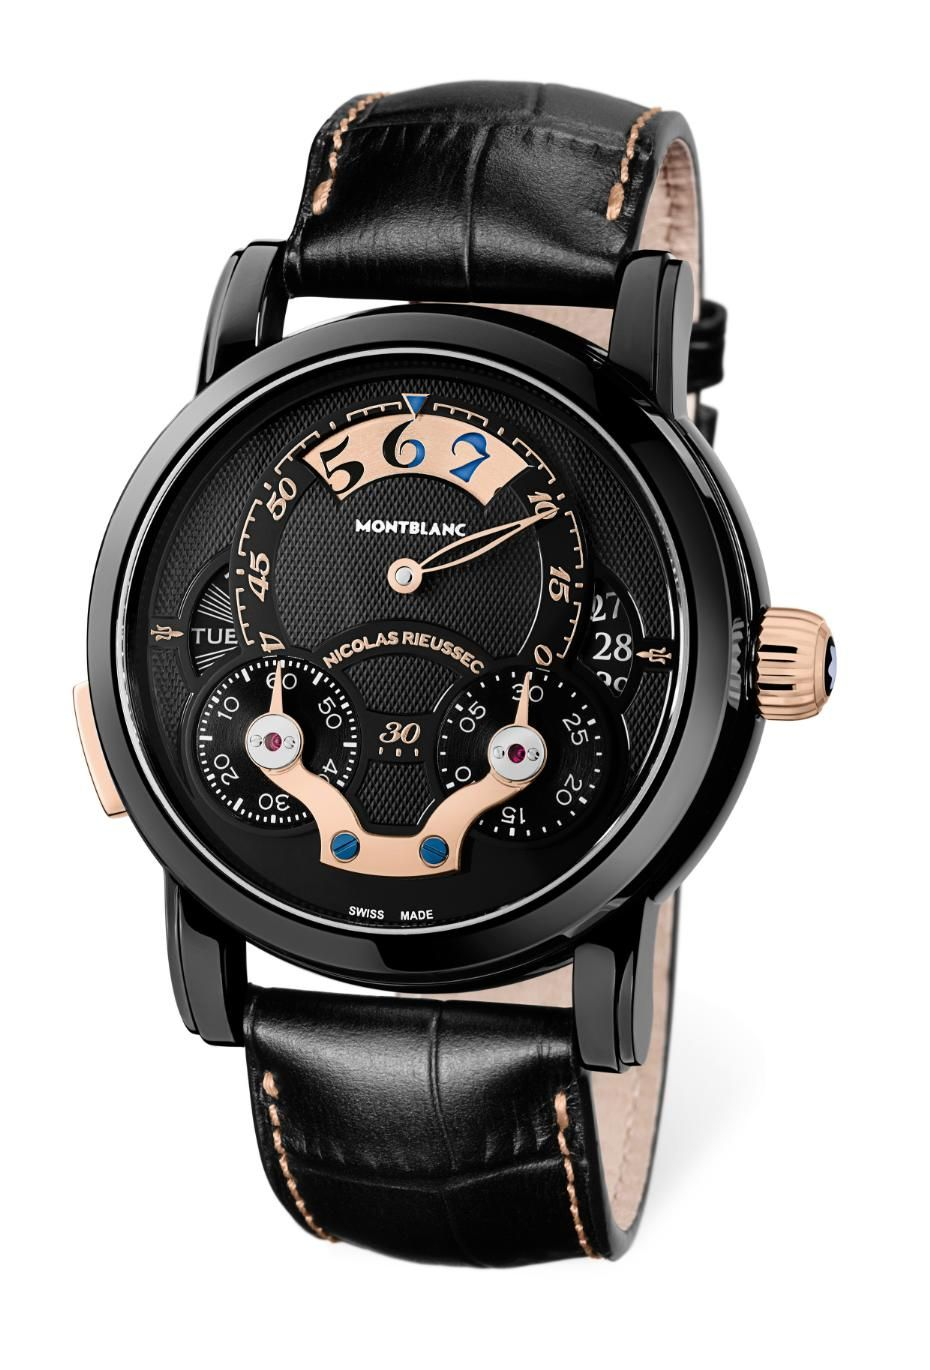 415f13b967d87 Montblanc - Nicolas Rieussec Rising Hours for Monaco for Only Watch ...